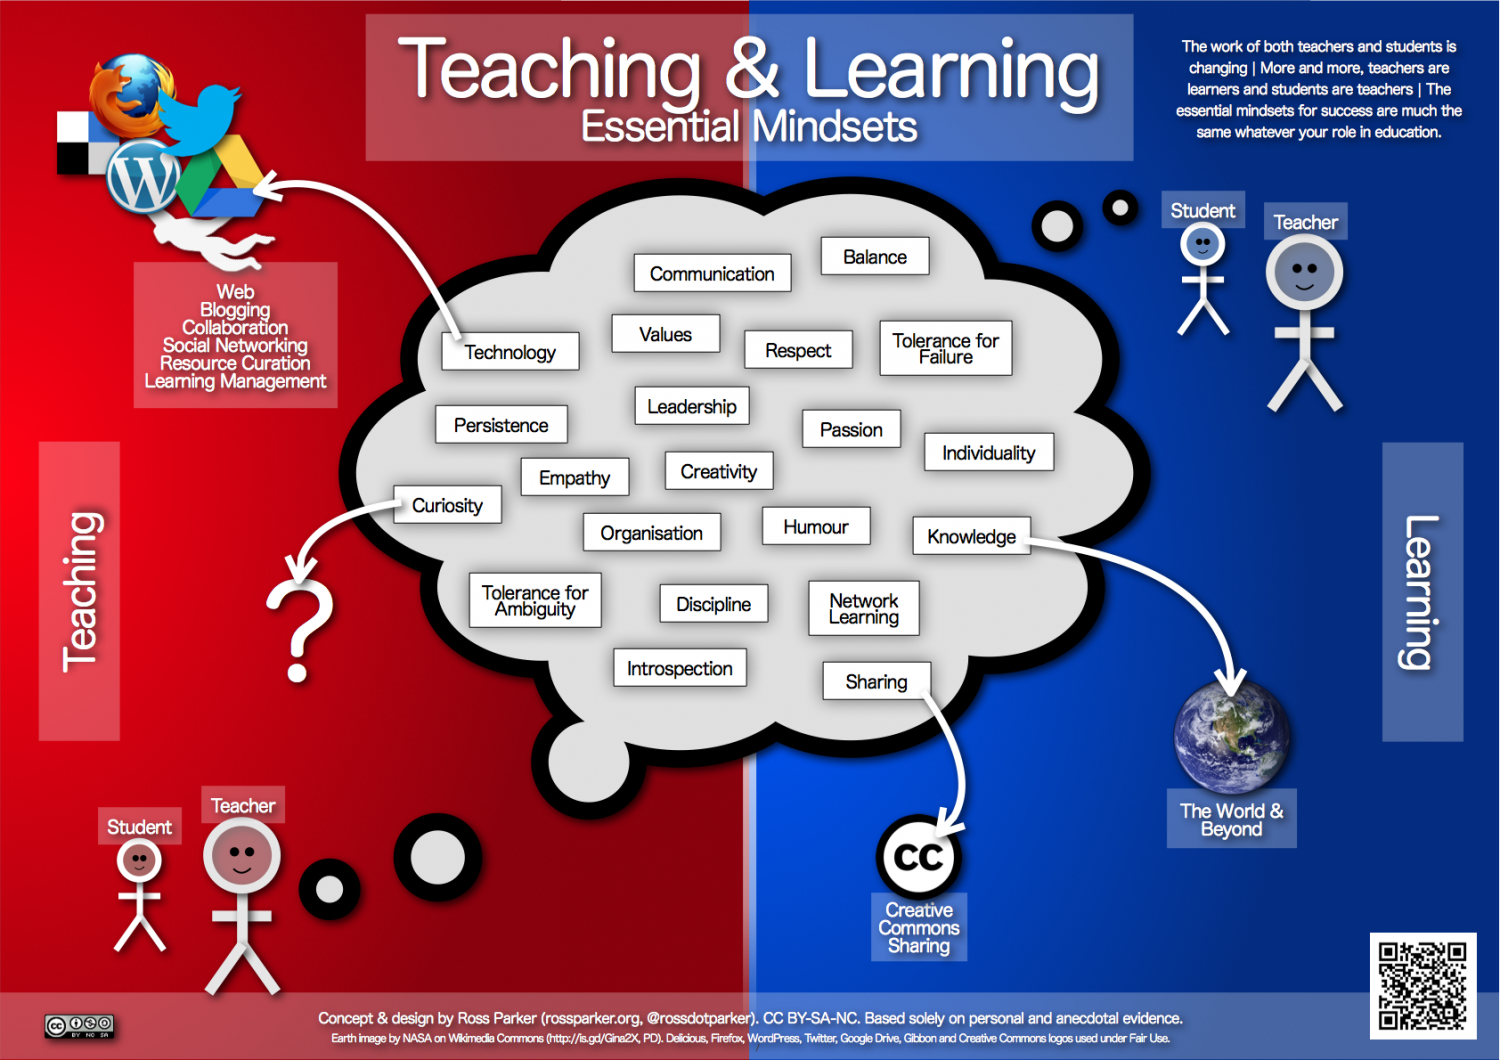 Teaching & Learning Essential Mindsets Infographic